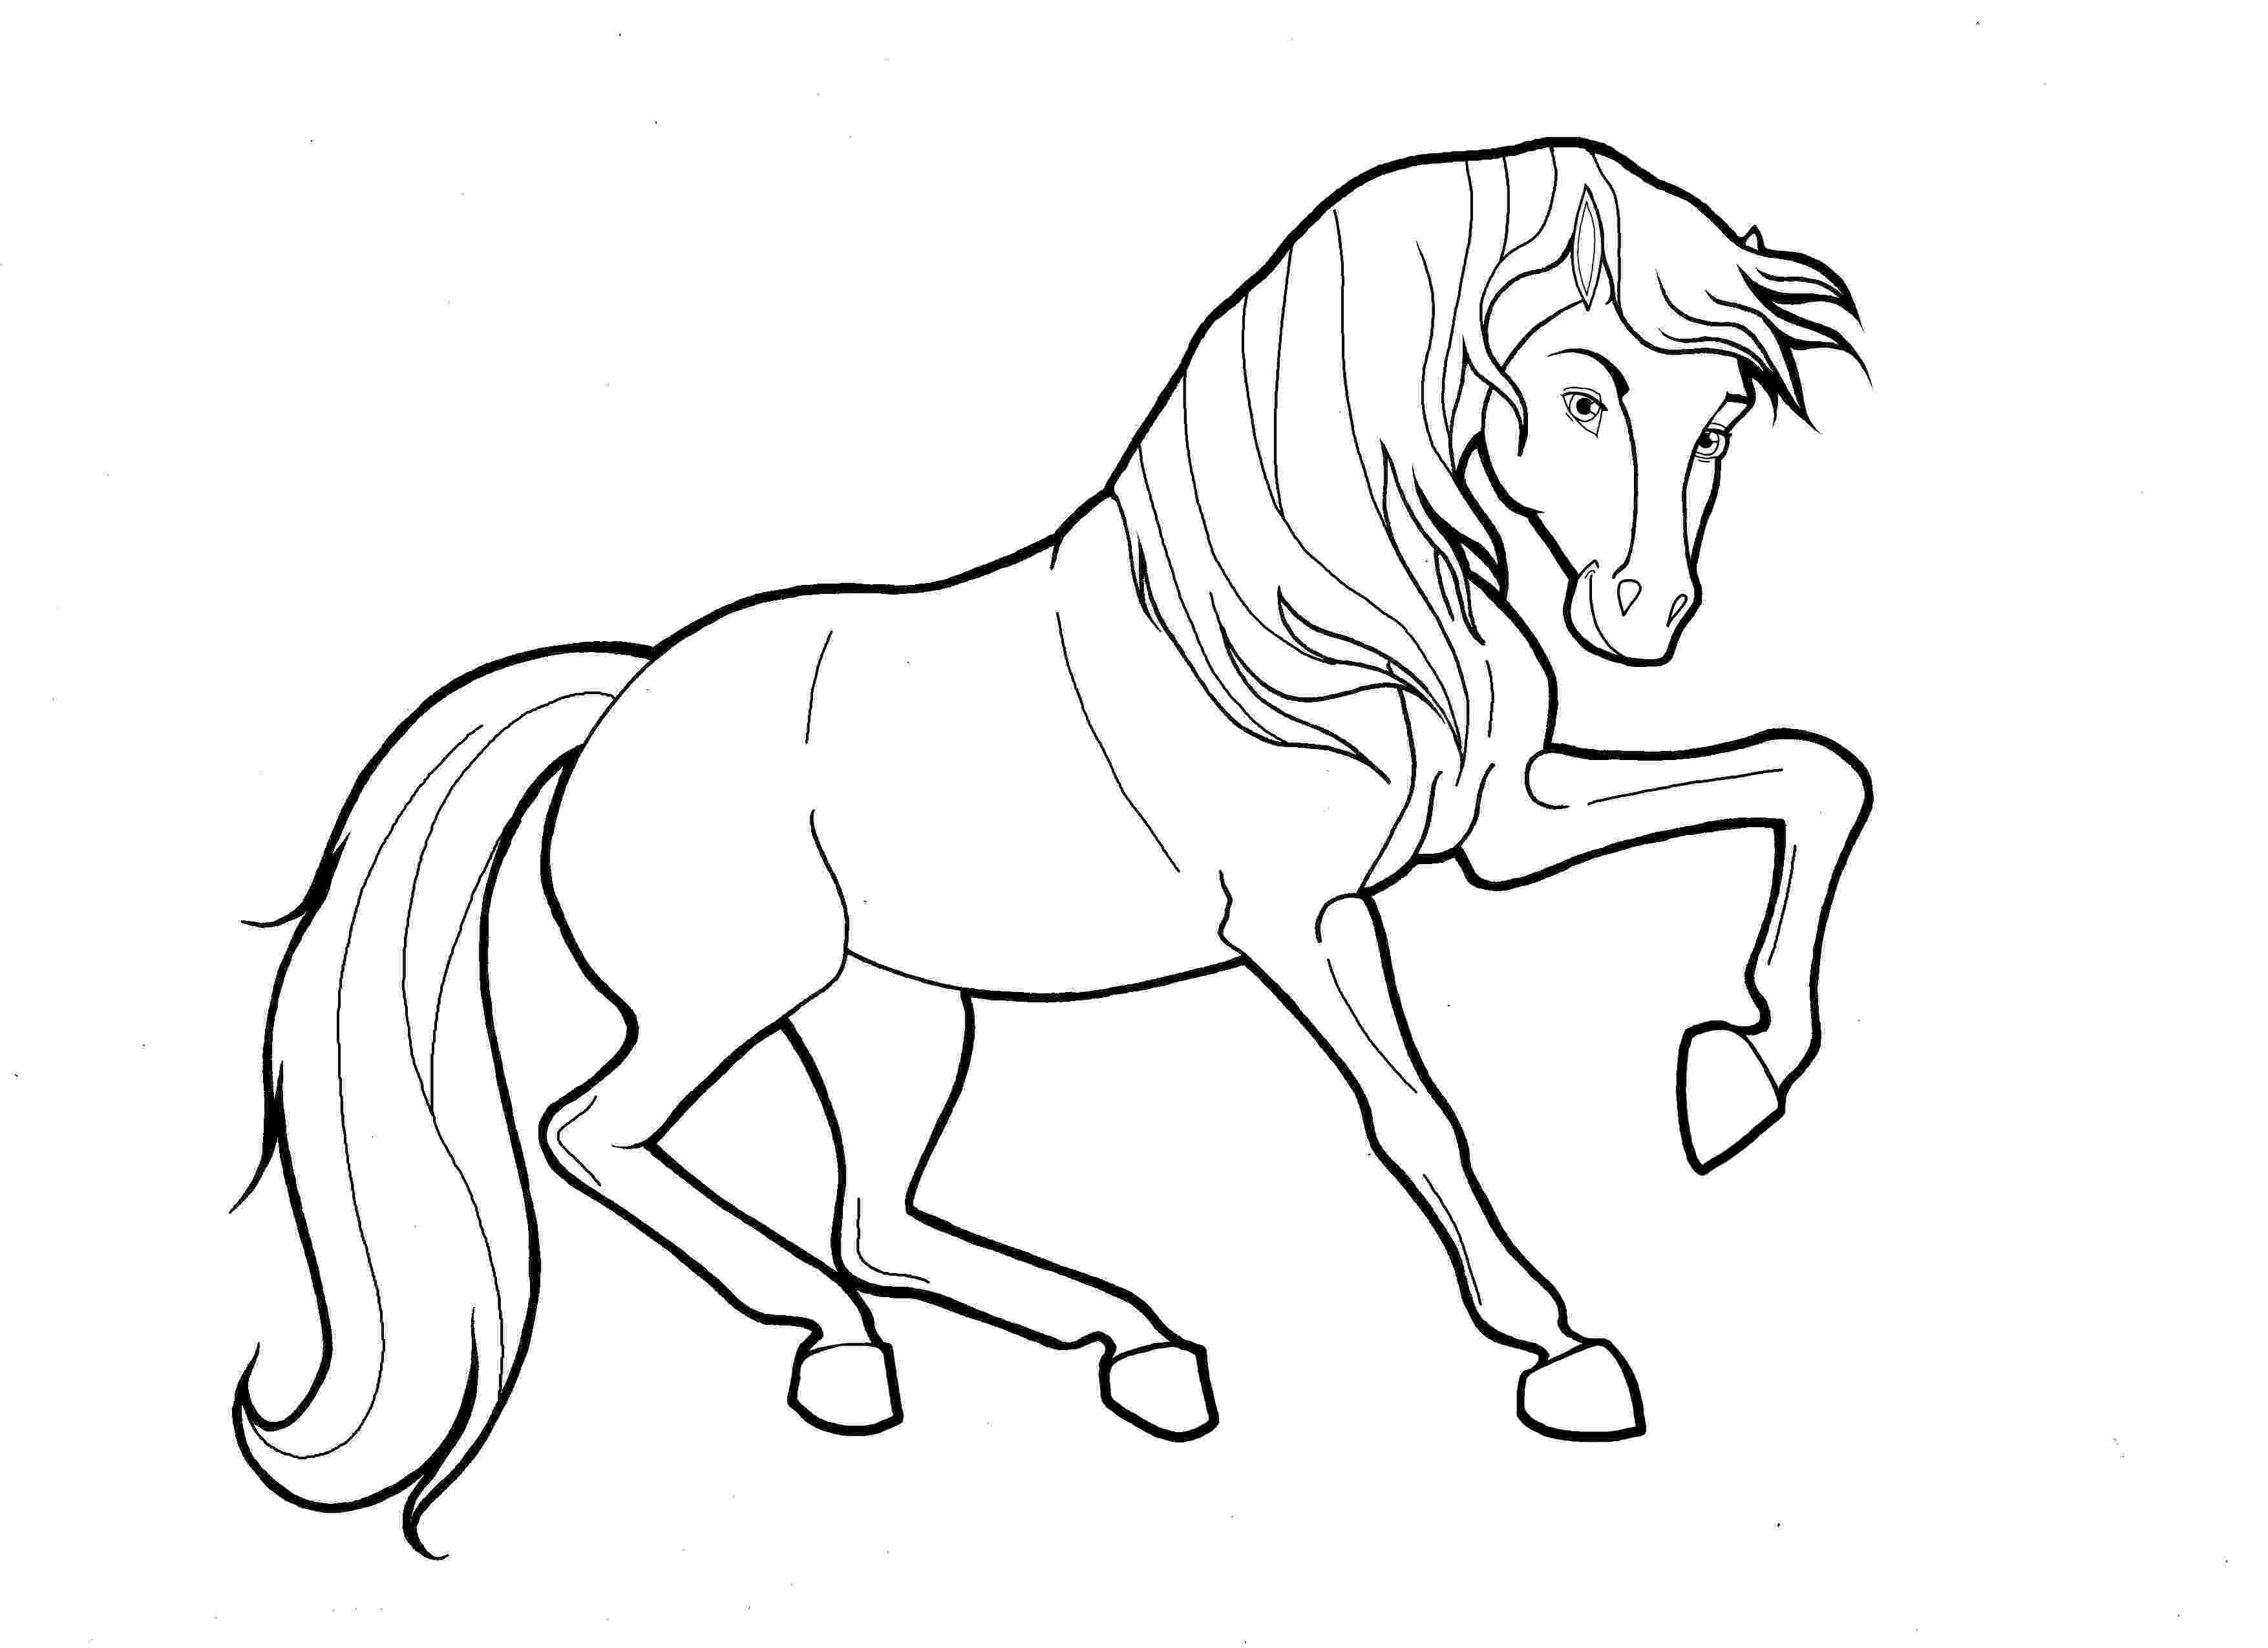 horse printable coloring pages free printable horse coloring pages for kids cool2bkids pages horse coloring printable